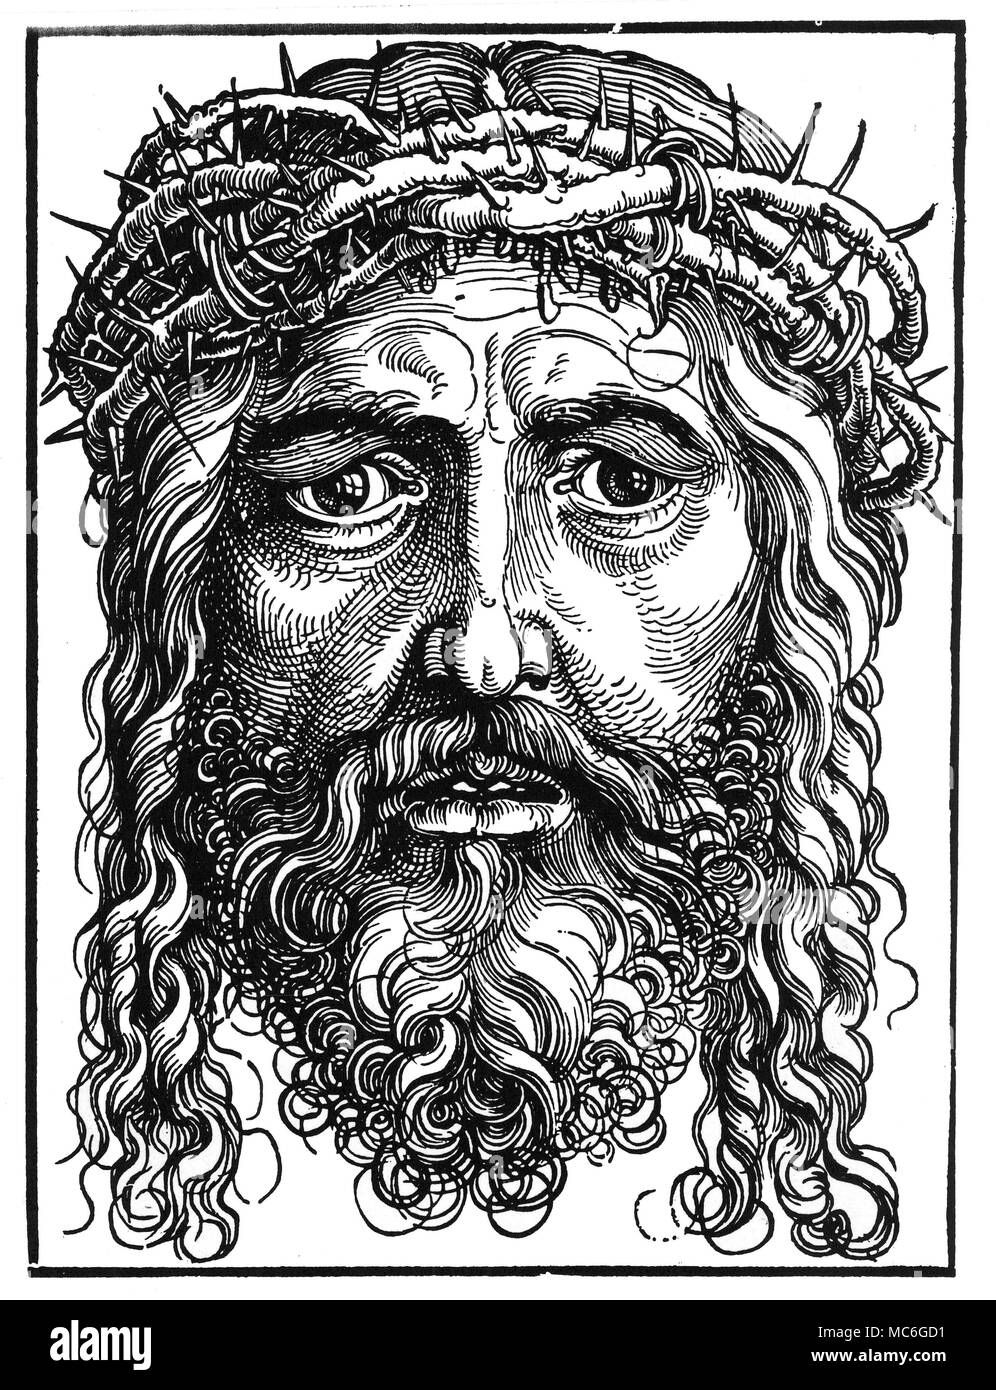 CHRISTIAN - THE FACE OF CHRIST Woodcut usually associated with the German artist, Albrecht D³rer, but probably designed and cut by Hans Sebald Beham, circa 1510. - Stock Image